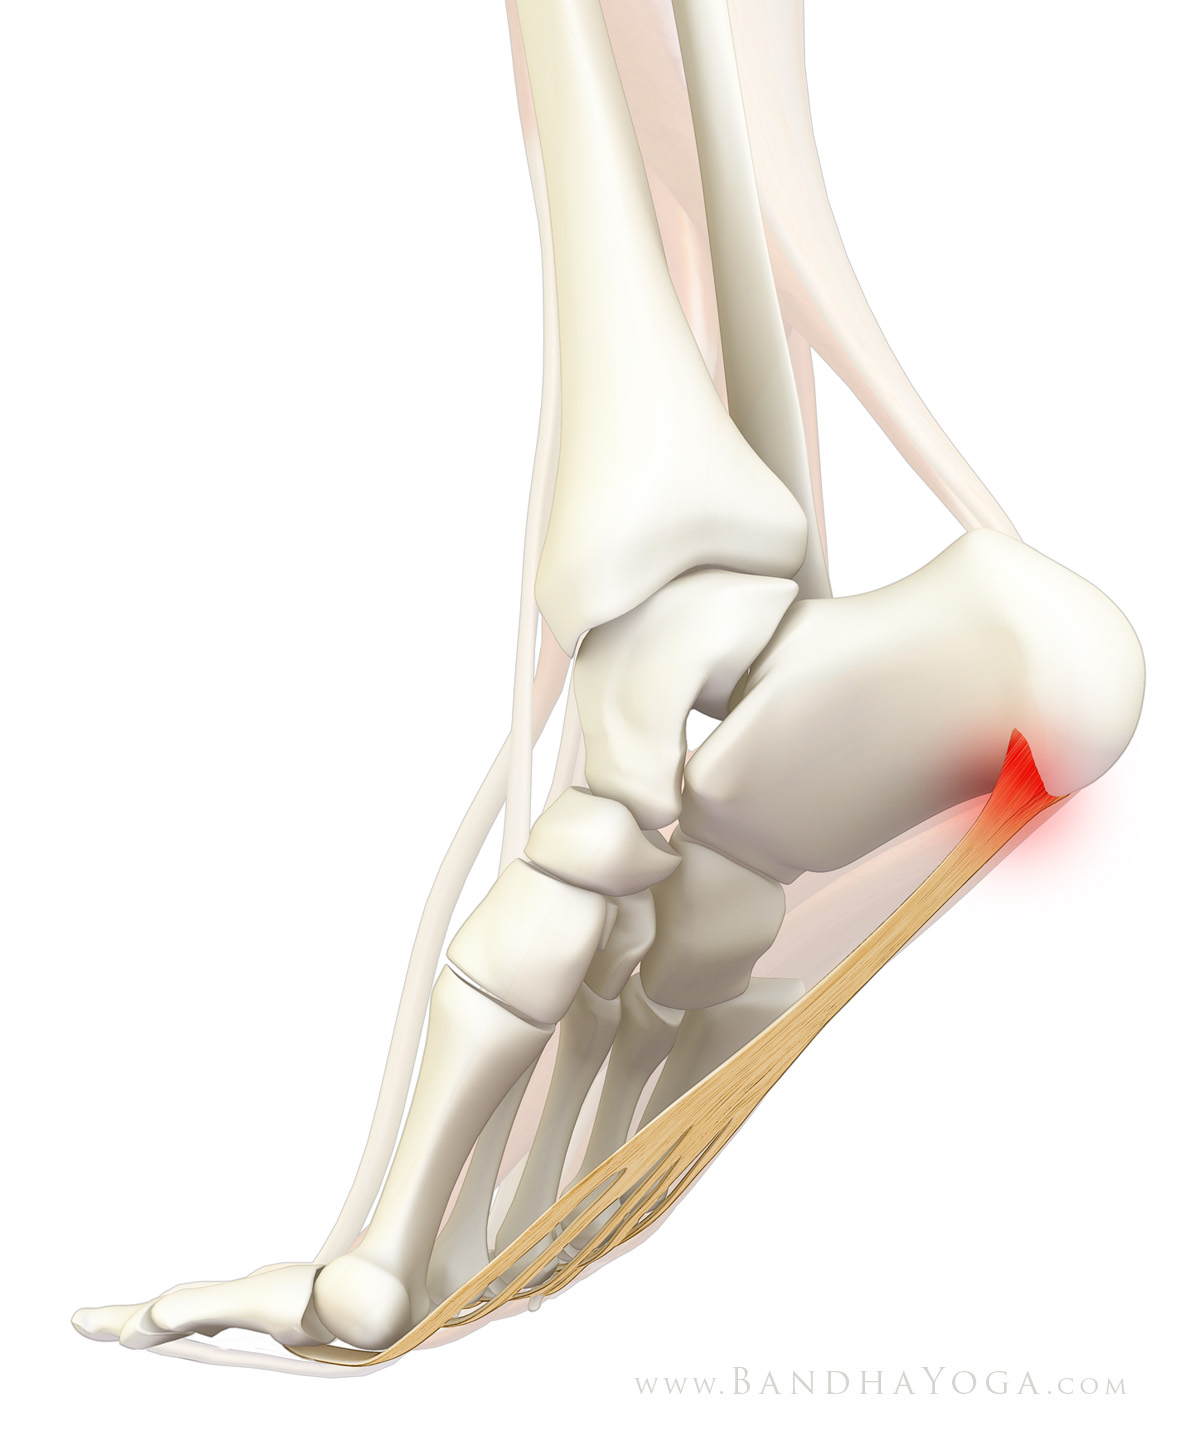 General Pain Relief Yoga Practices For Plantar Fasciitis Yogauonline